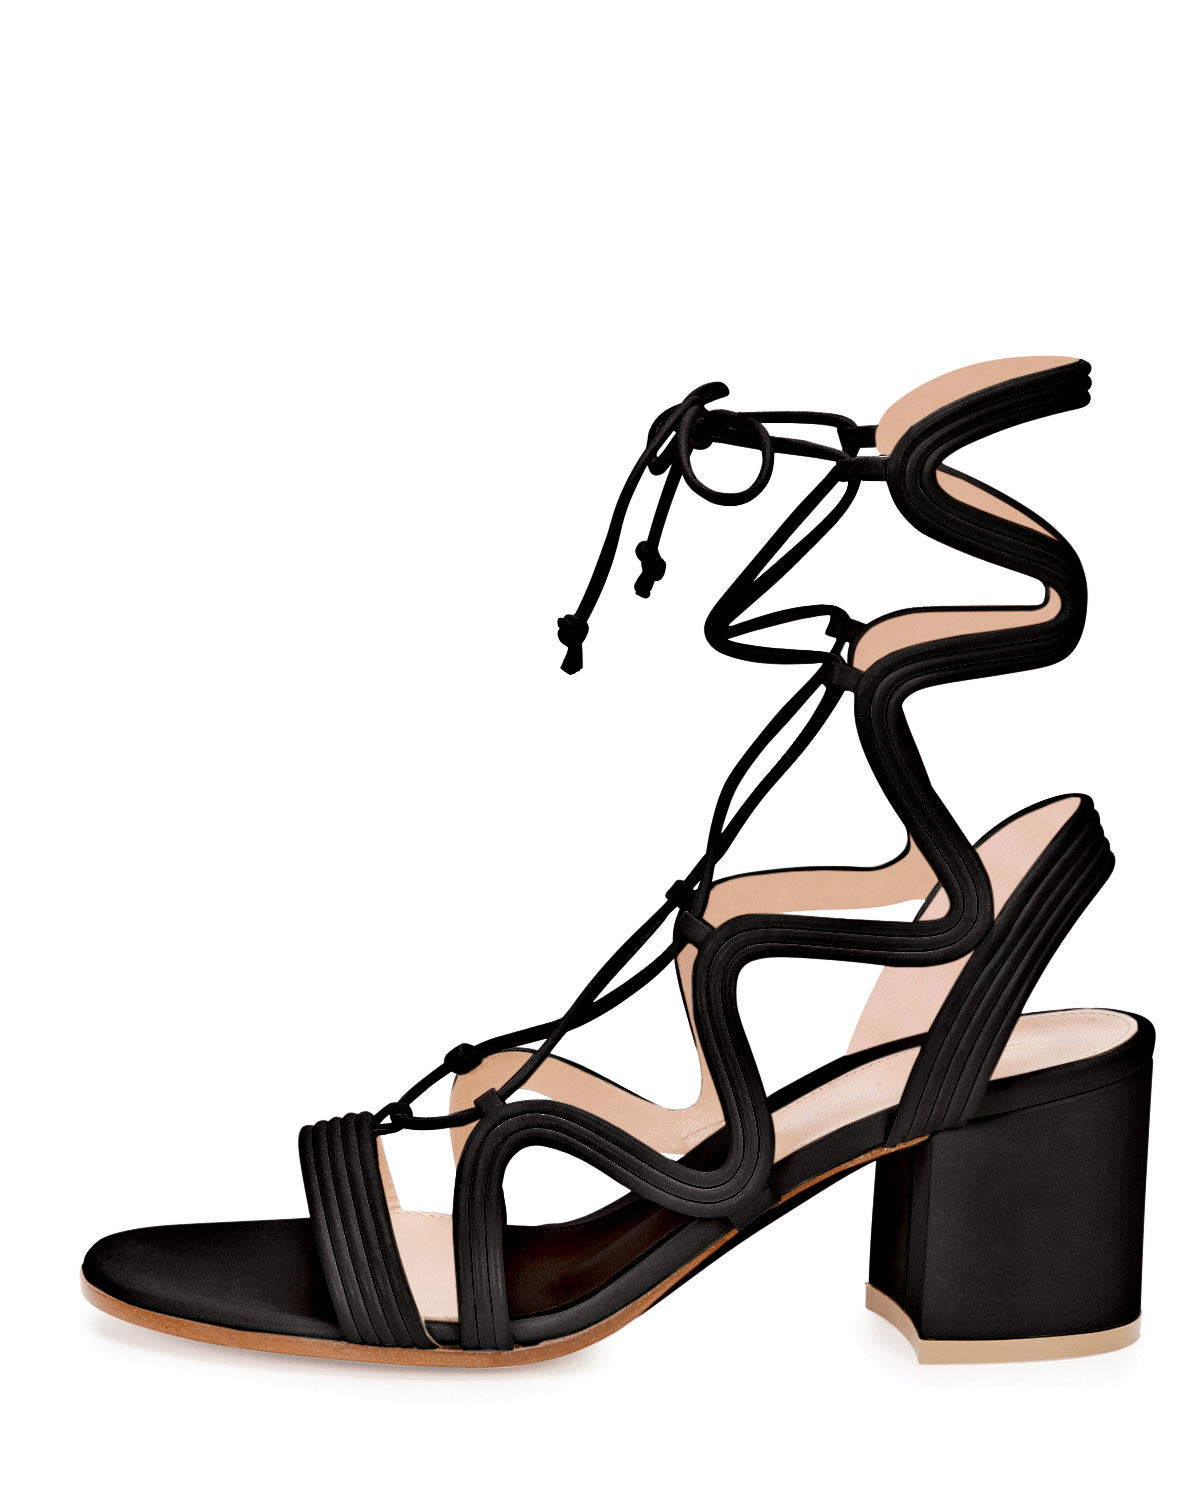 Gladiator Sandals With Small Heel Pt3dXwCY